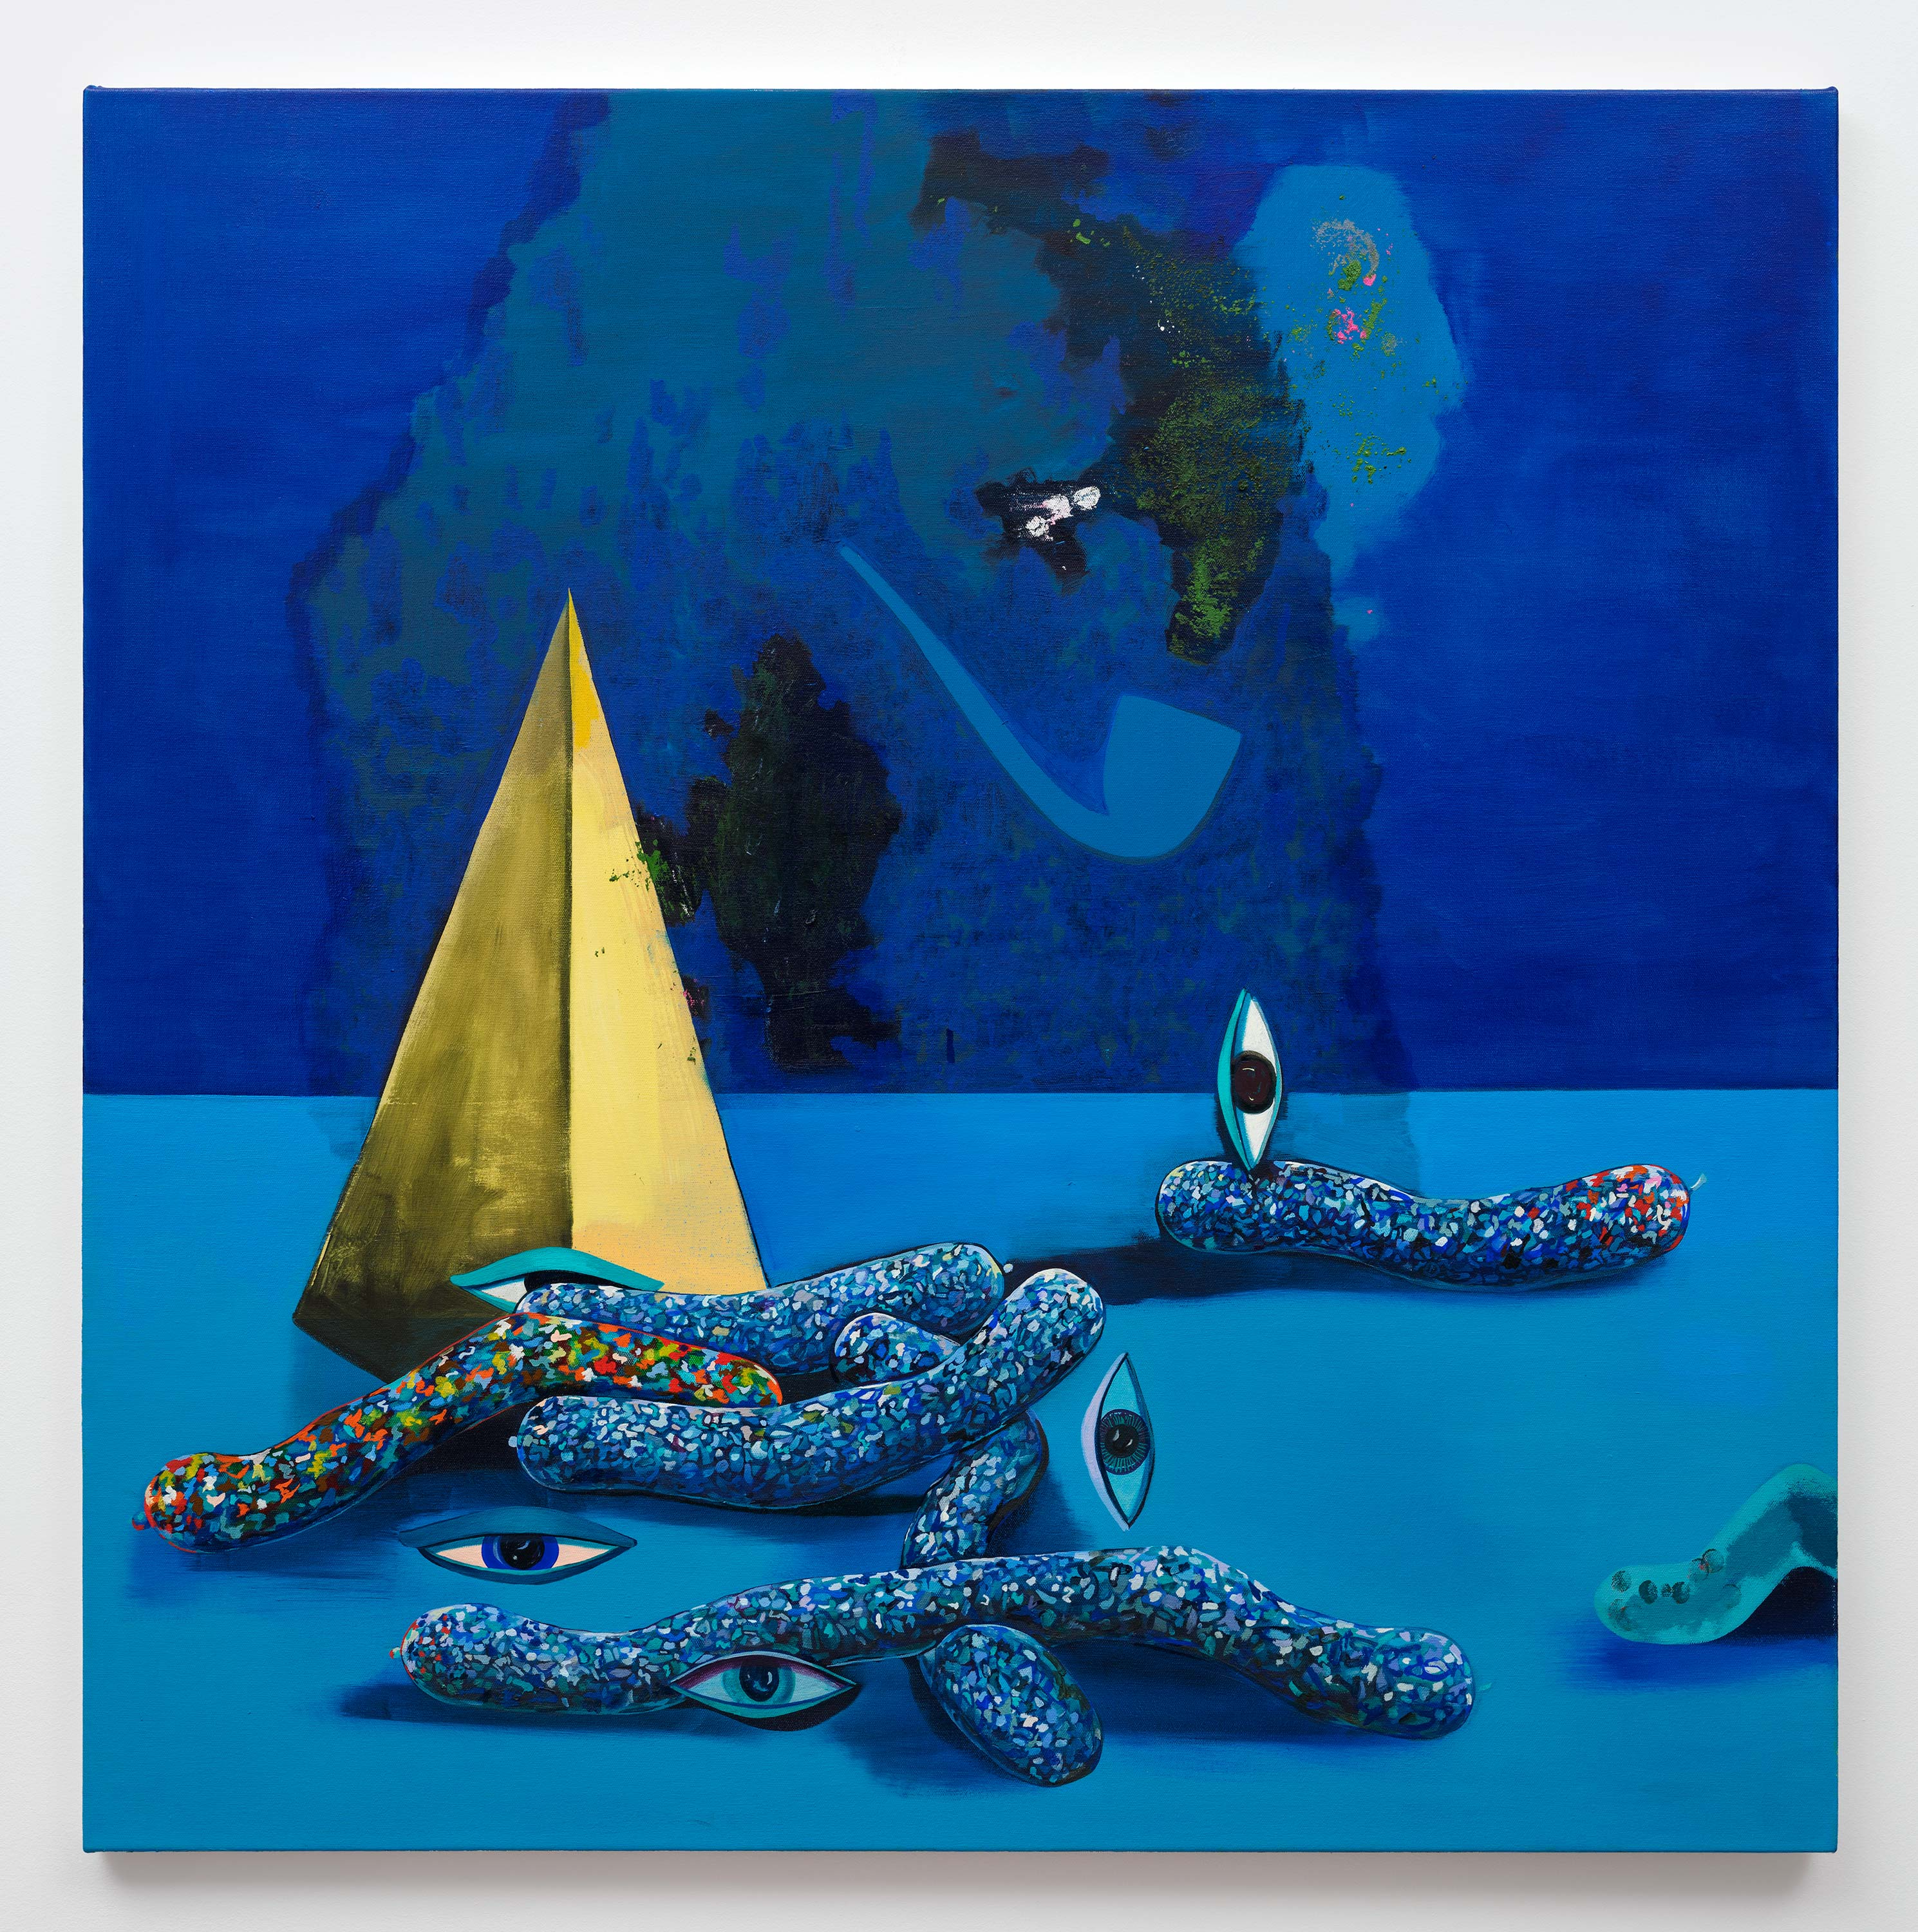 Paul Branca<br>Untitled, Sausage-yes, (Blue)<br>2015<br>Oil on canvas<br>40 x 40 inches (101.6 x 101.6 cm)